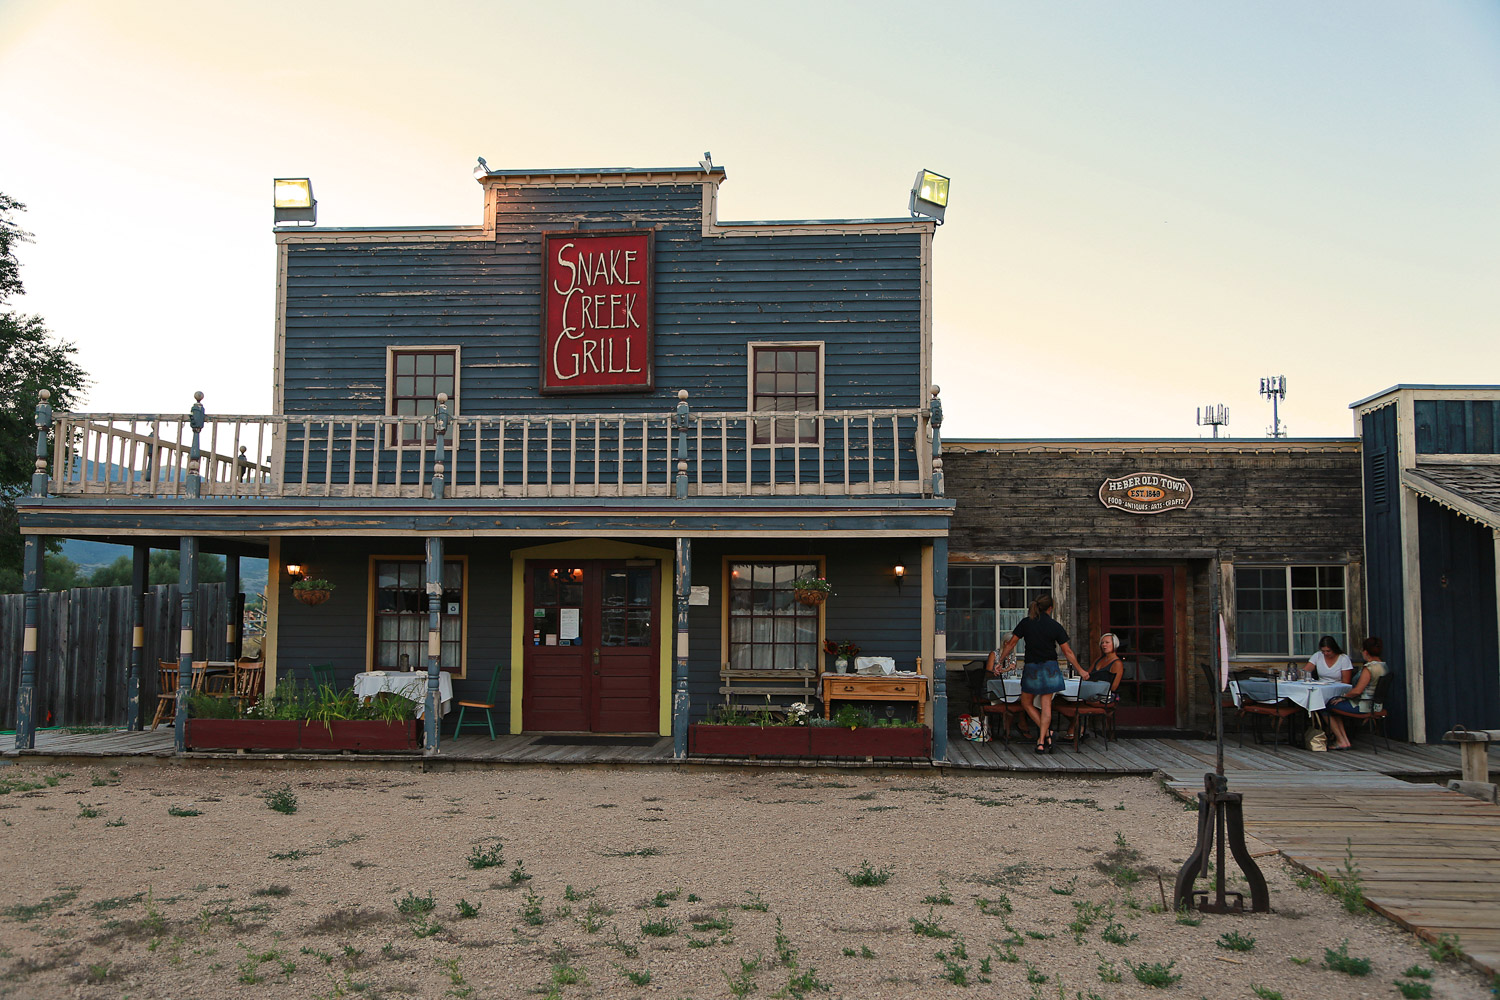 Snake Creek Grill - place&space-94.jpg